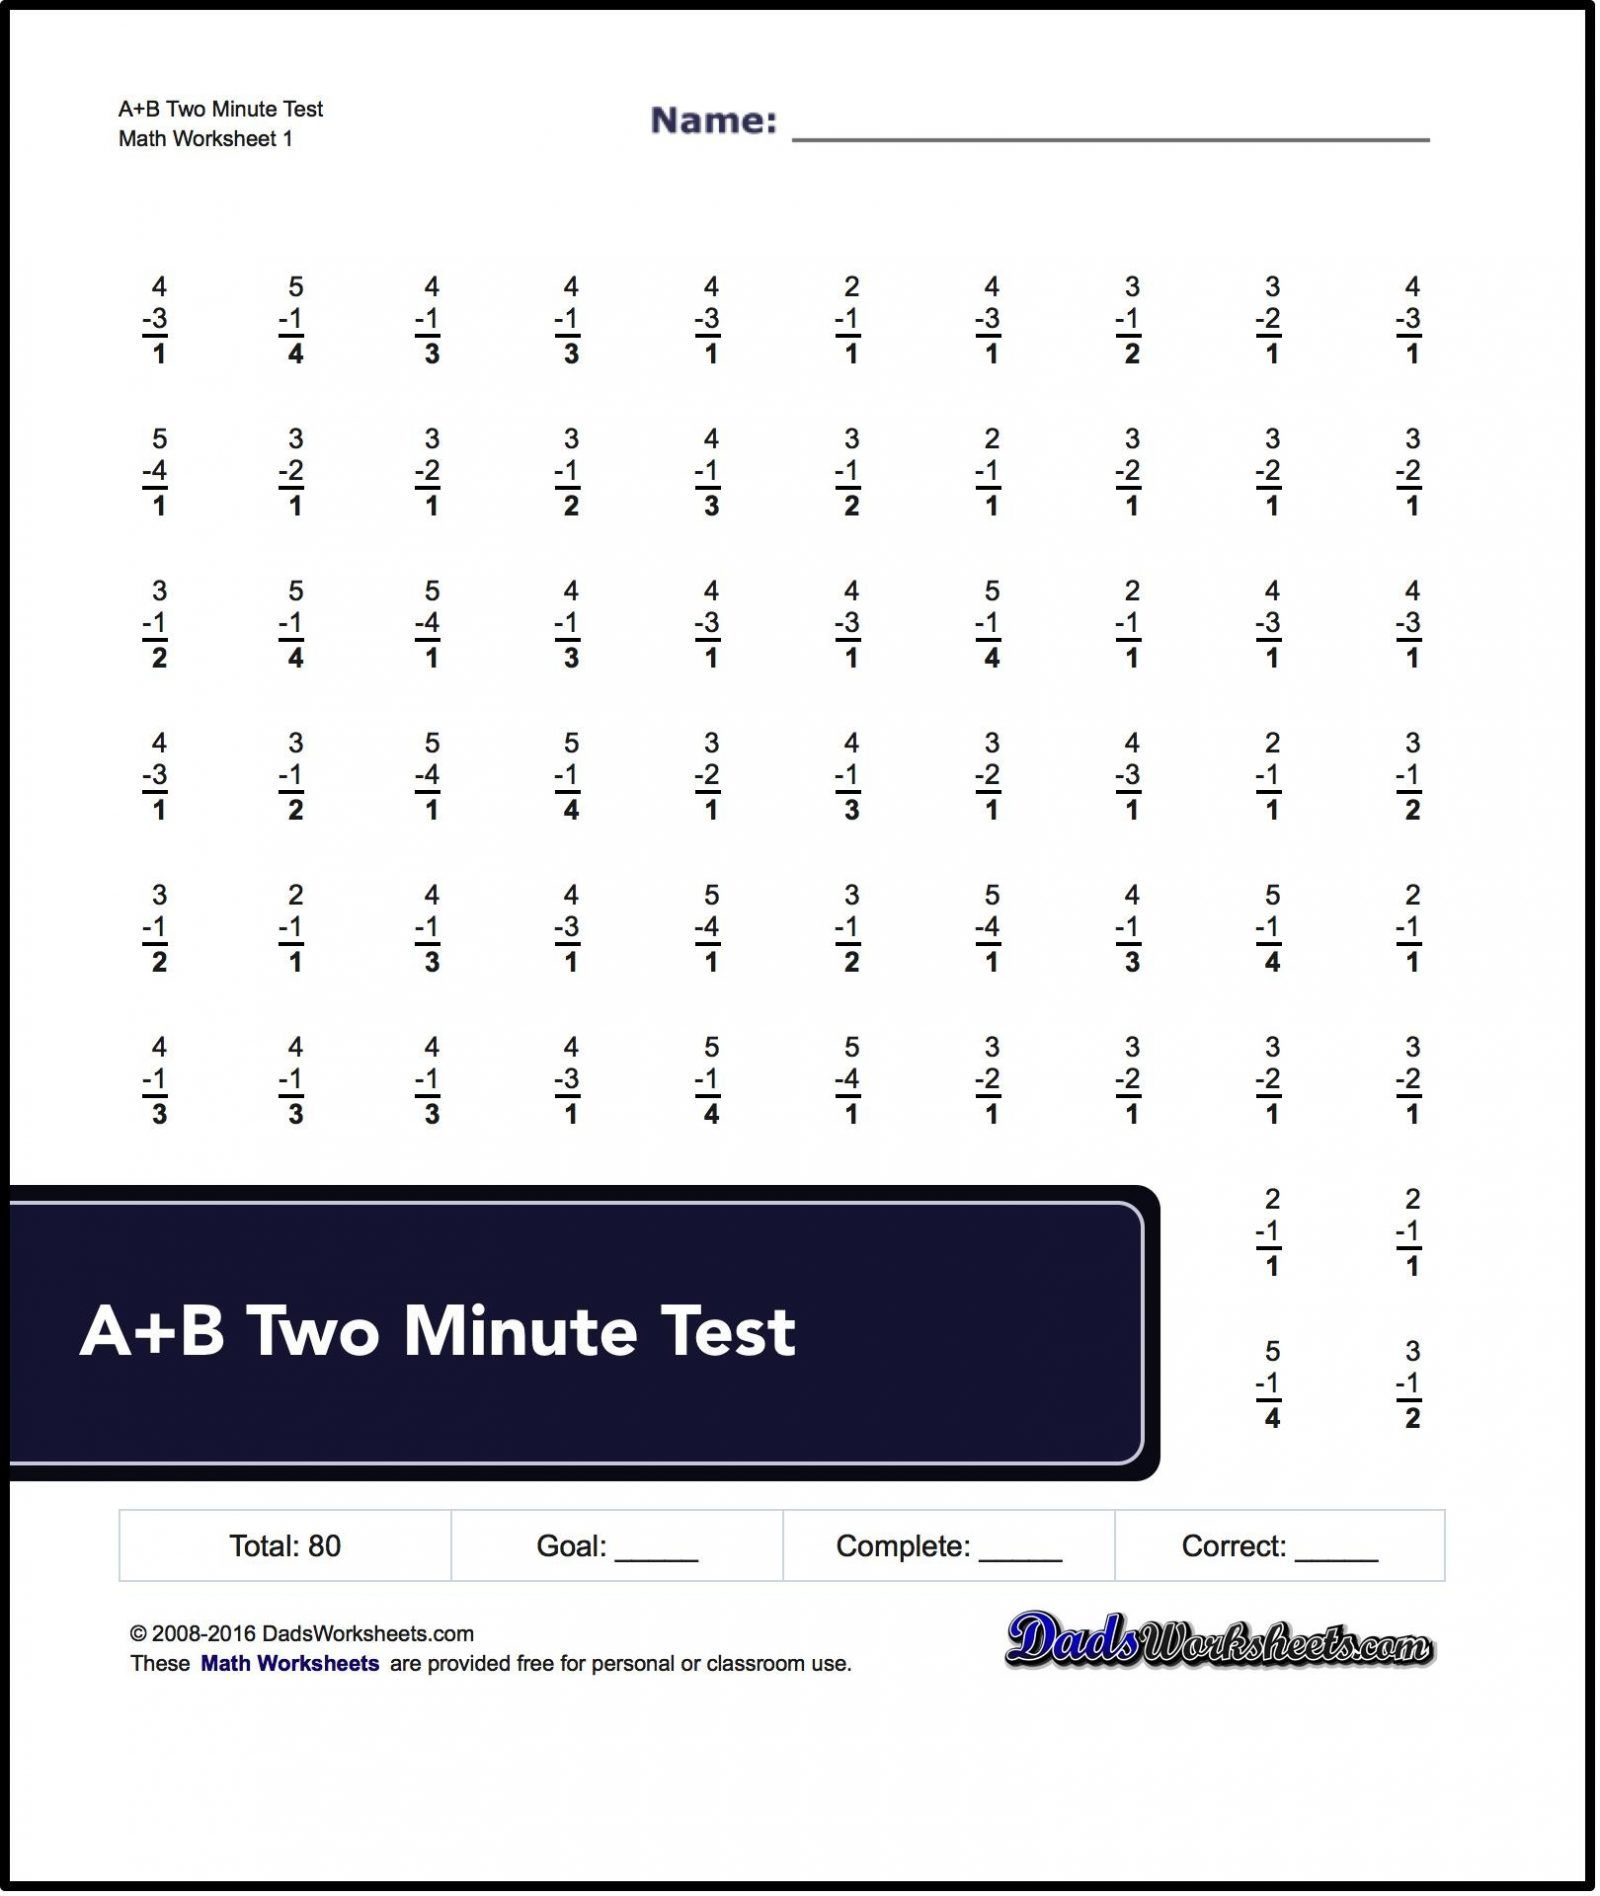 12 Times Table Maths With Images